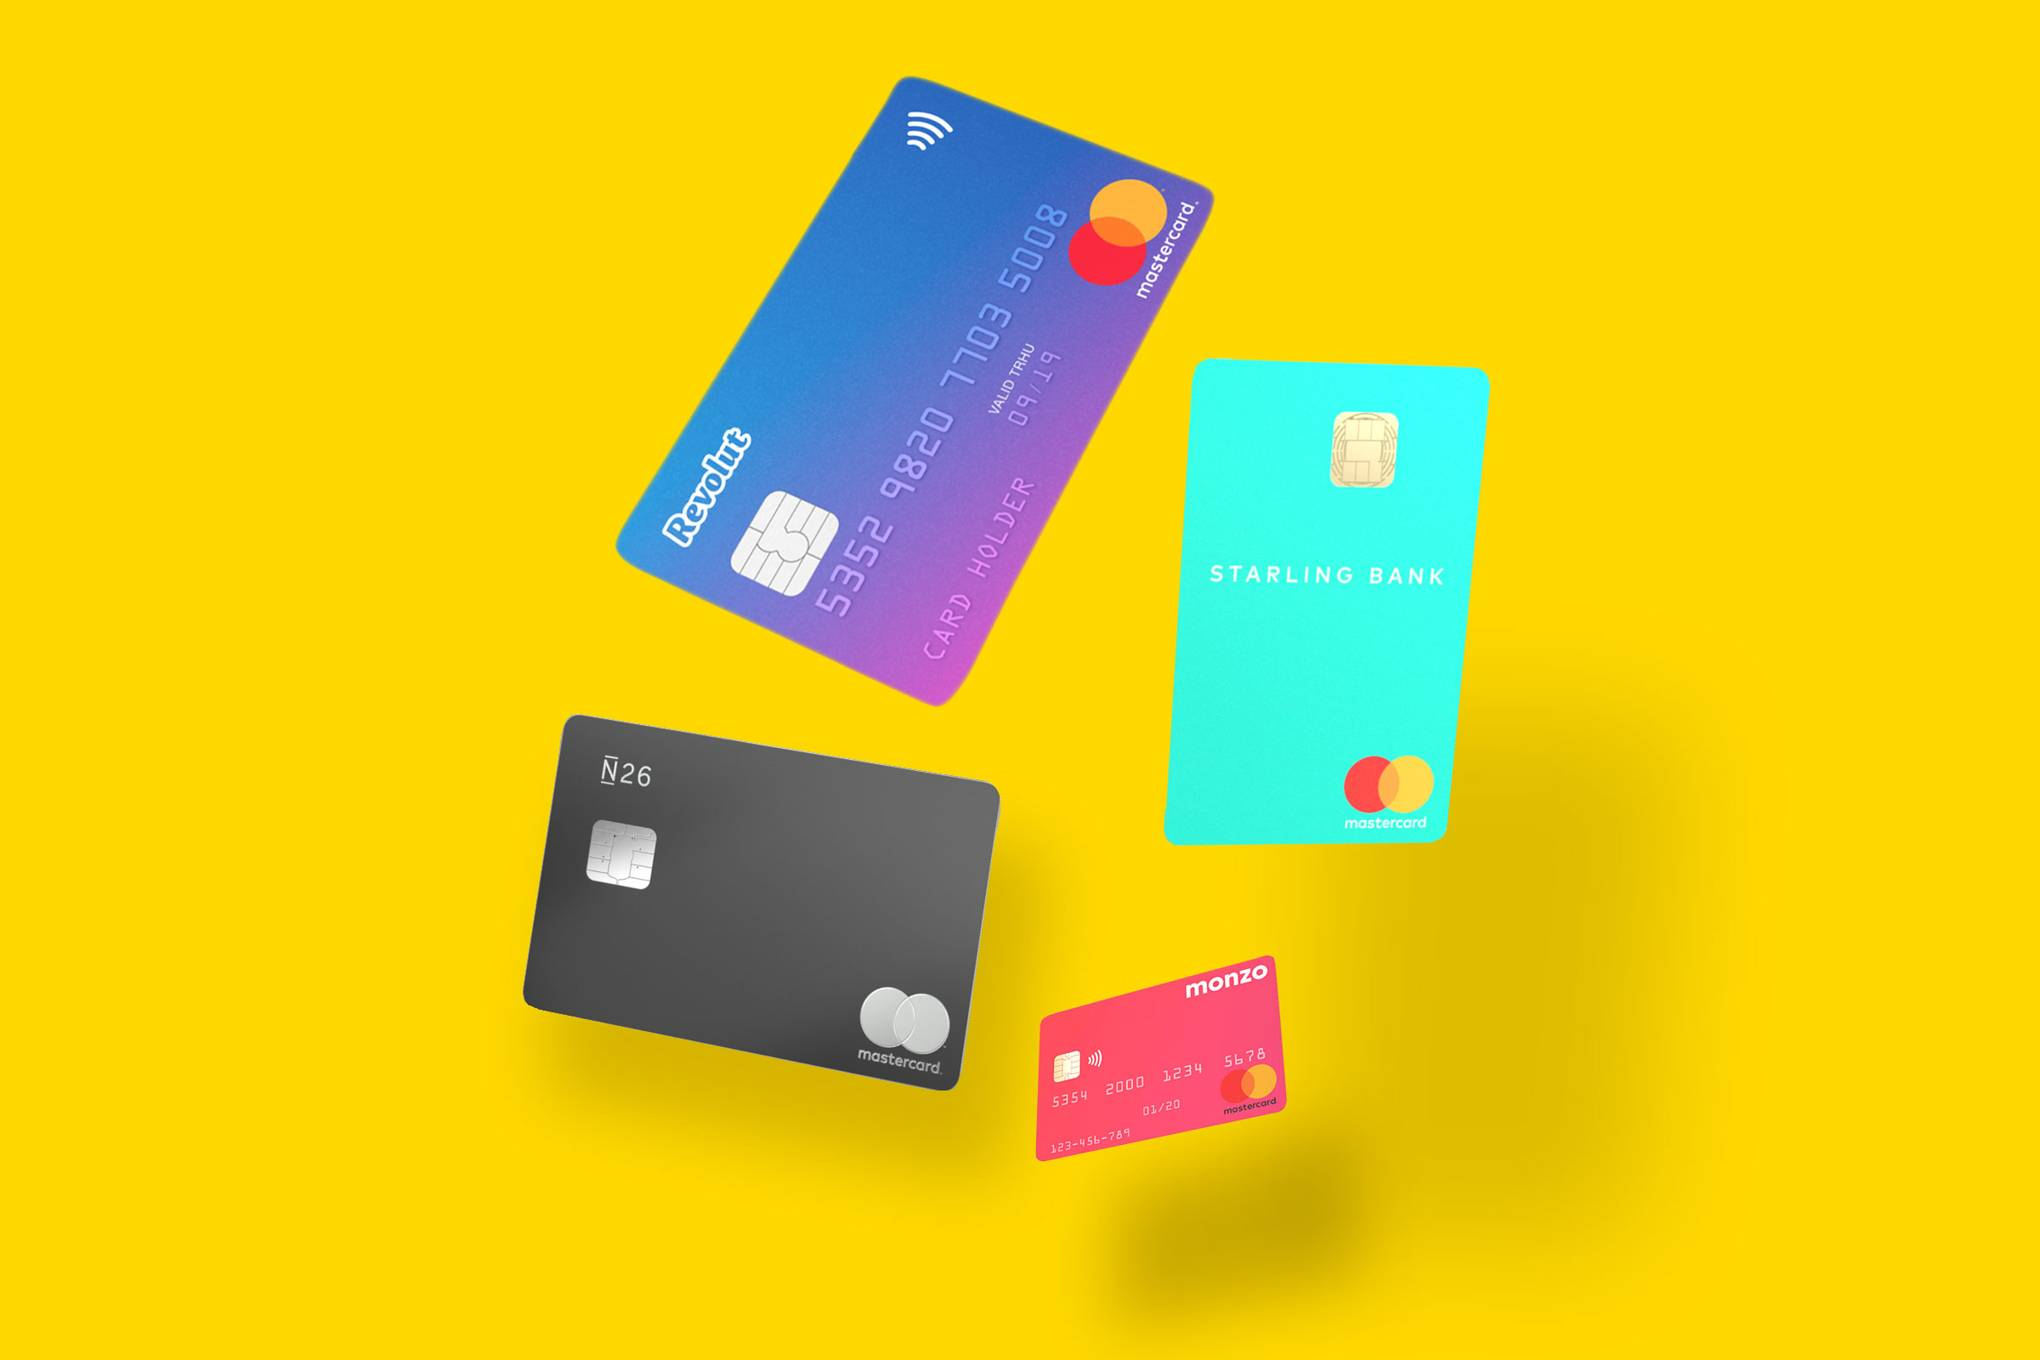 Legacy banks are fighting back against the Monzo